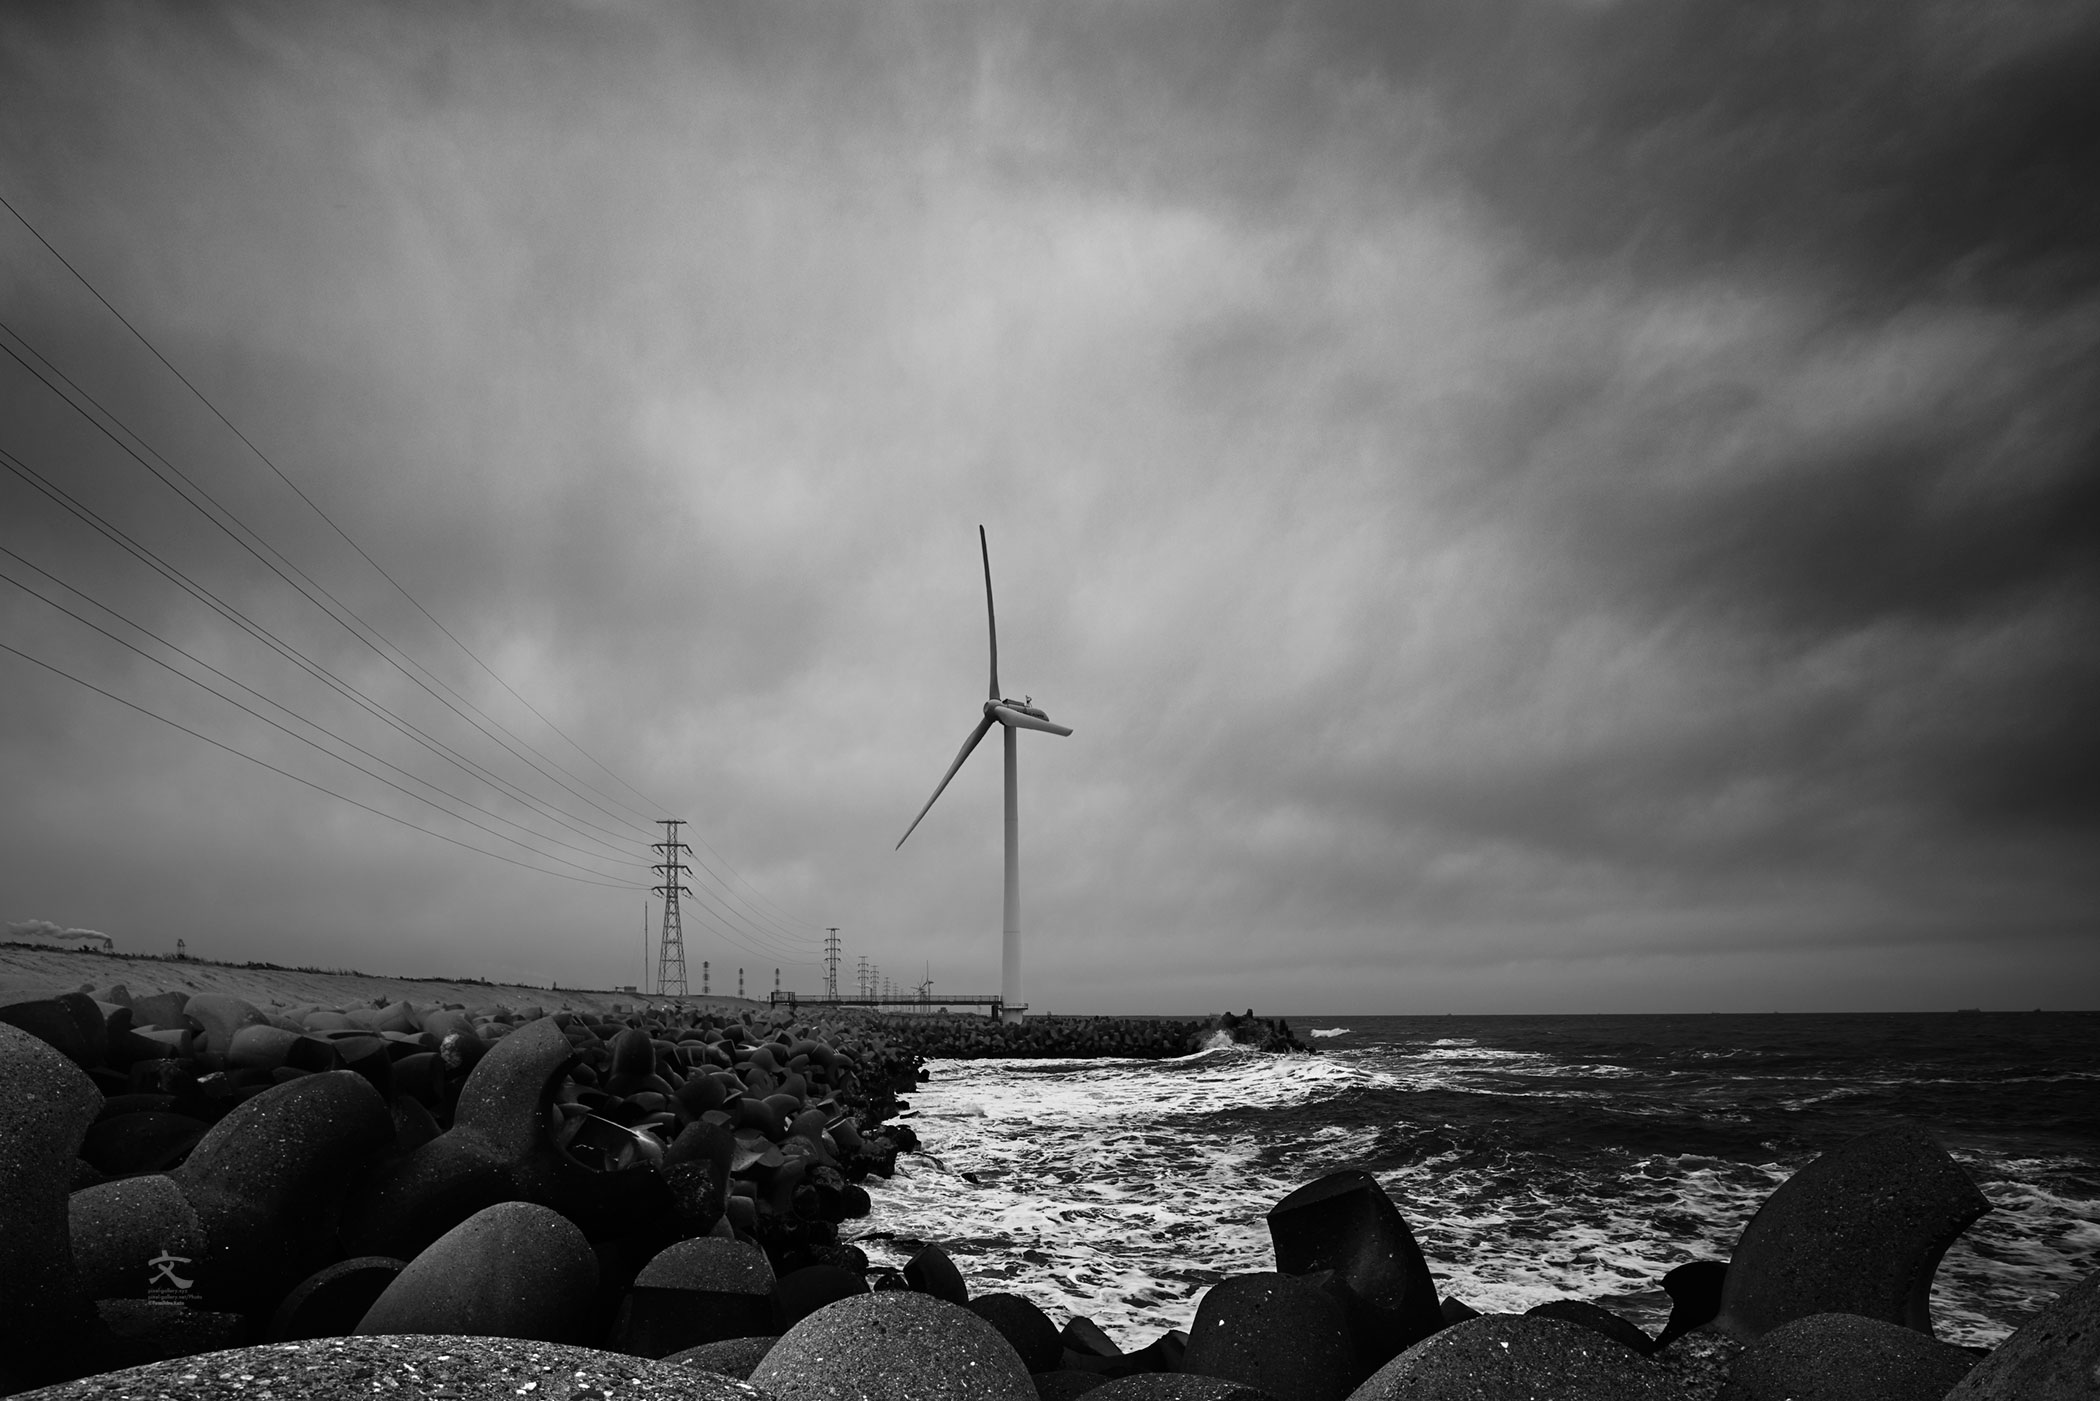 海景 Wind power Part 3. 20170331_7997_2 Kashimanada